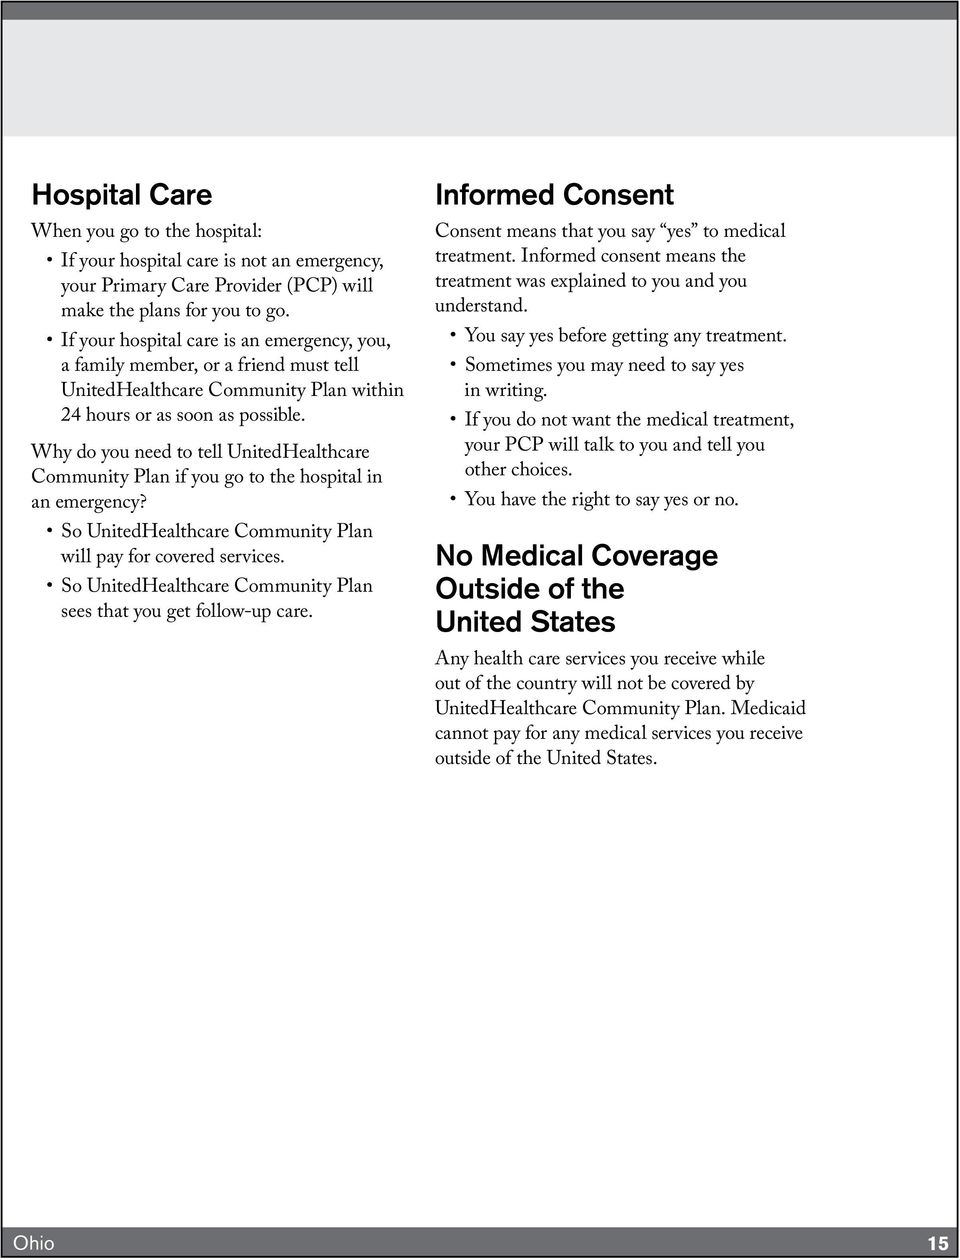 Why do you need to tell UnitedHealthcare Community Plan if you go to the hospital in an emergency? So UnitedHealthcare Community Plan will pay for covered services.